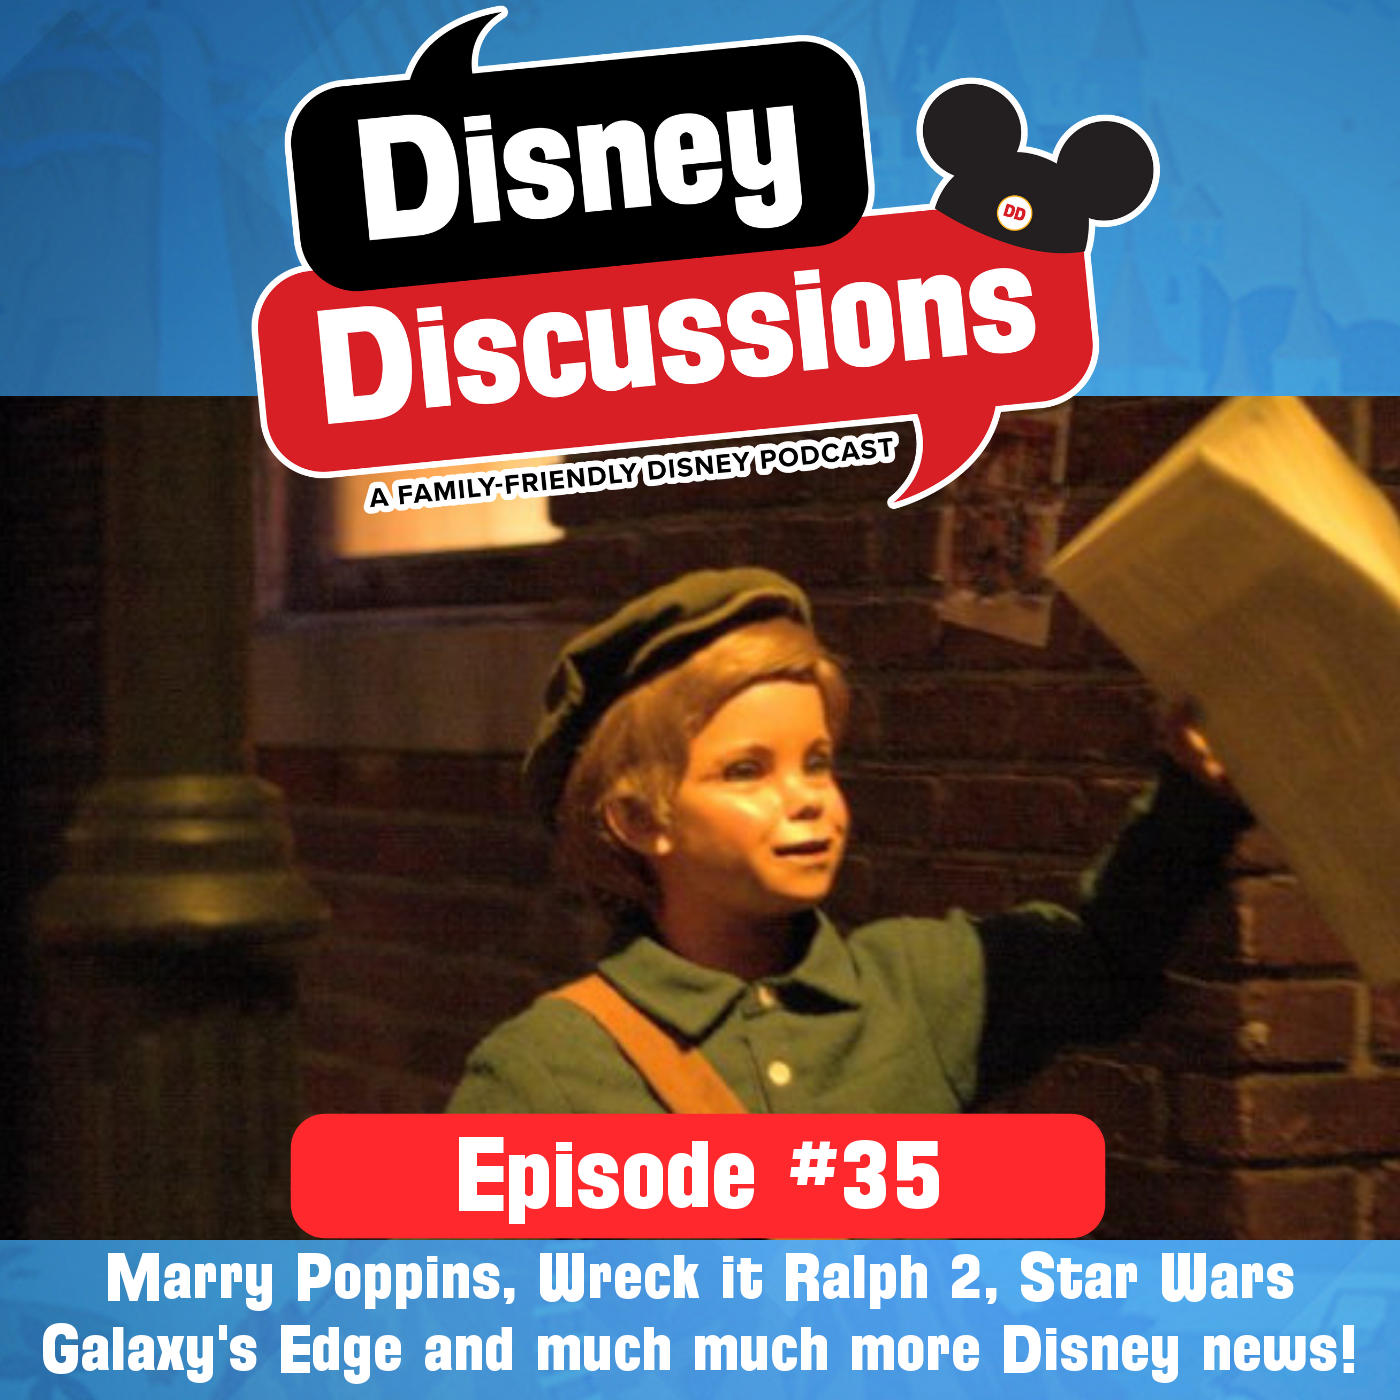 We discuss Marry Poppins, Wreck it Ralph 2, Star Wars Galaxy's edge and much much more Disney news! - Disney Discussions